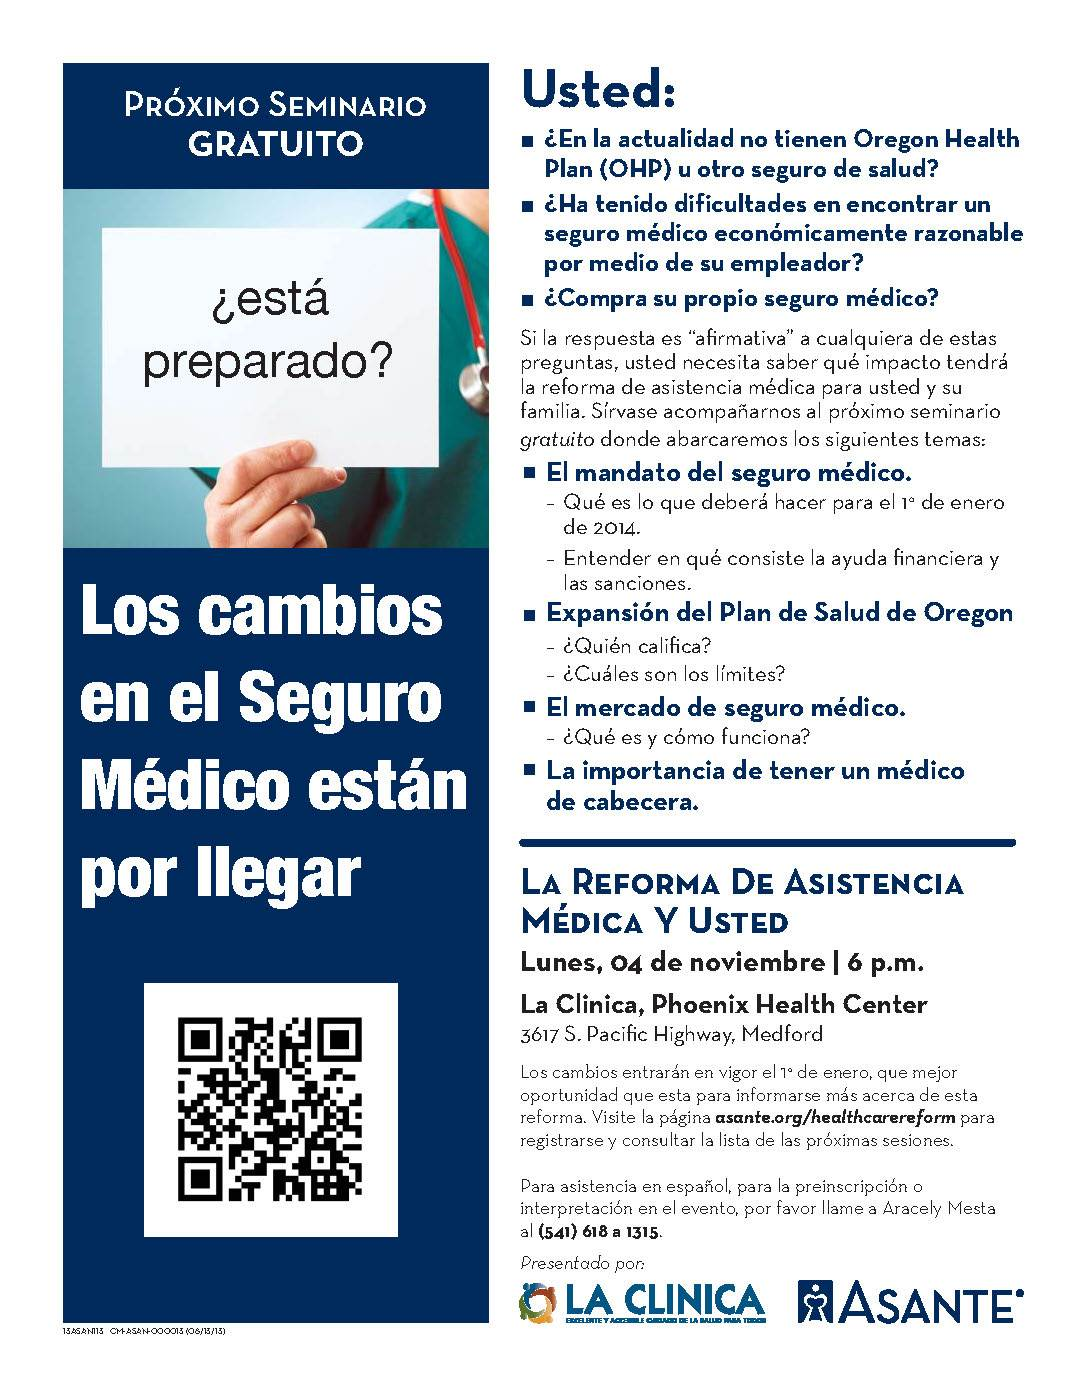 La Clinica Healthcare Reform Seminar spanish